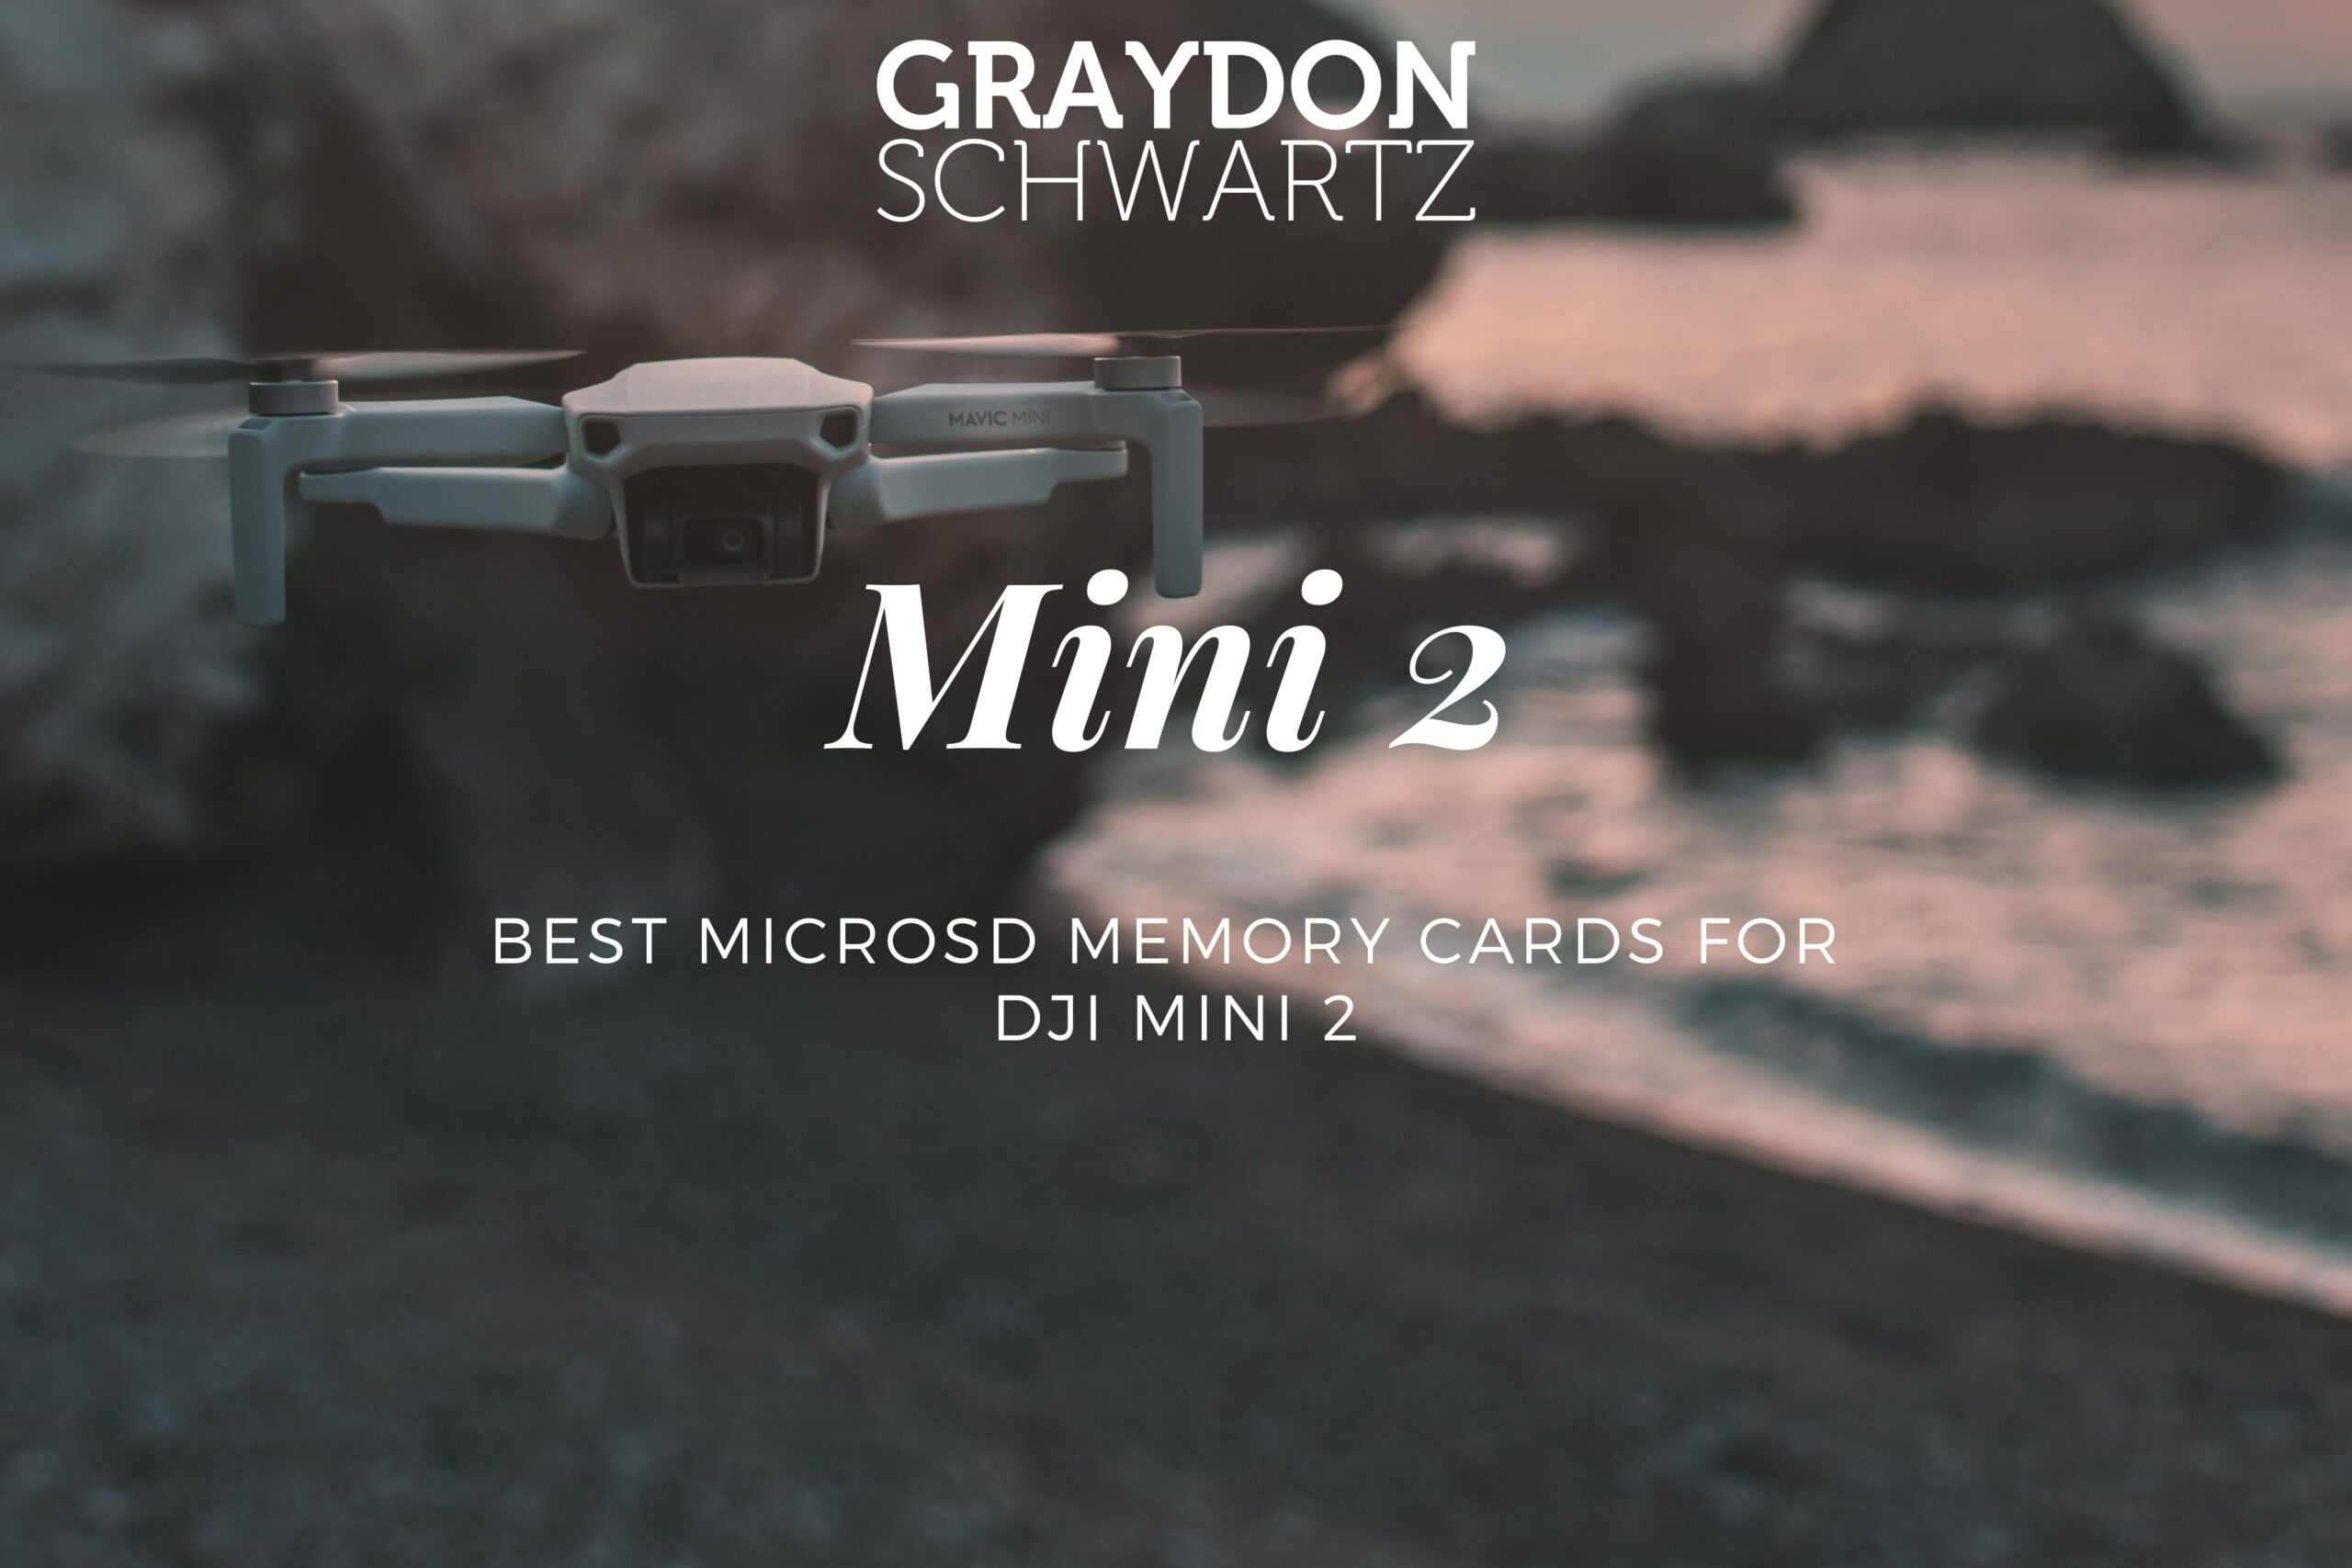 Best MicroSD Memory Cards for DJI Mini 2